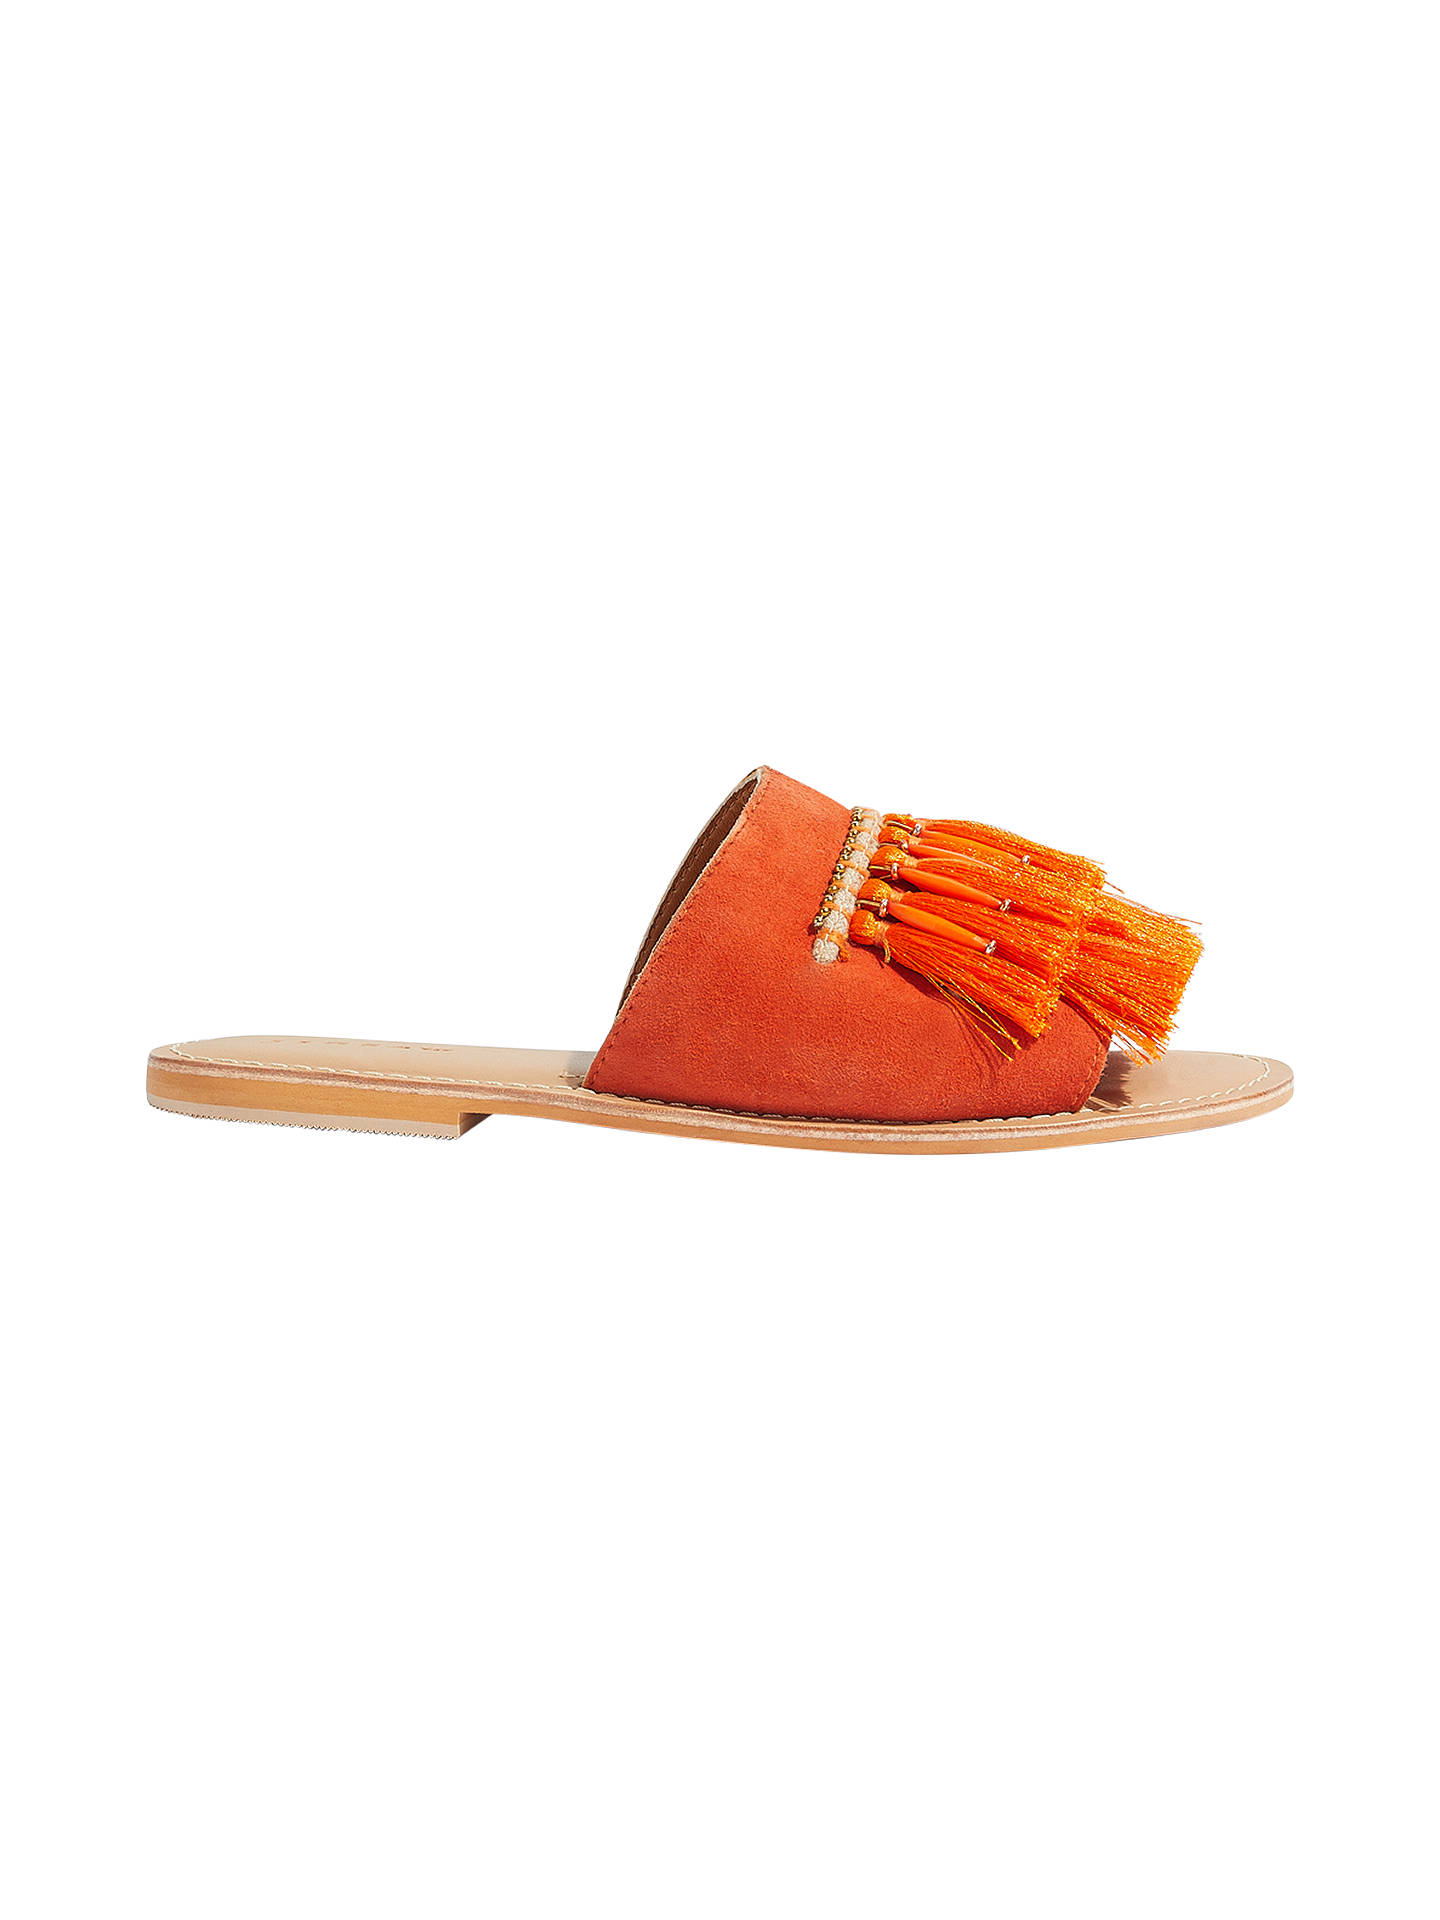 BuyJigsaw Minze Fringe Slider Sandals, Orange, 4 Online at johnlewis.com